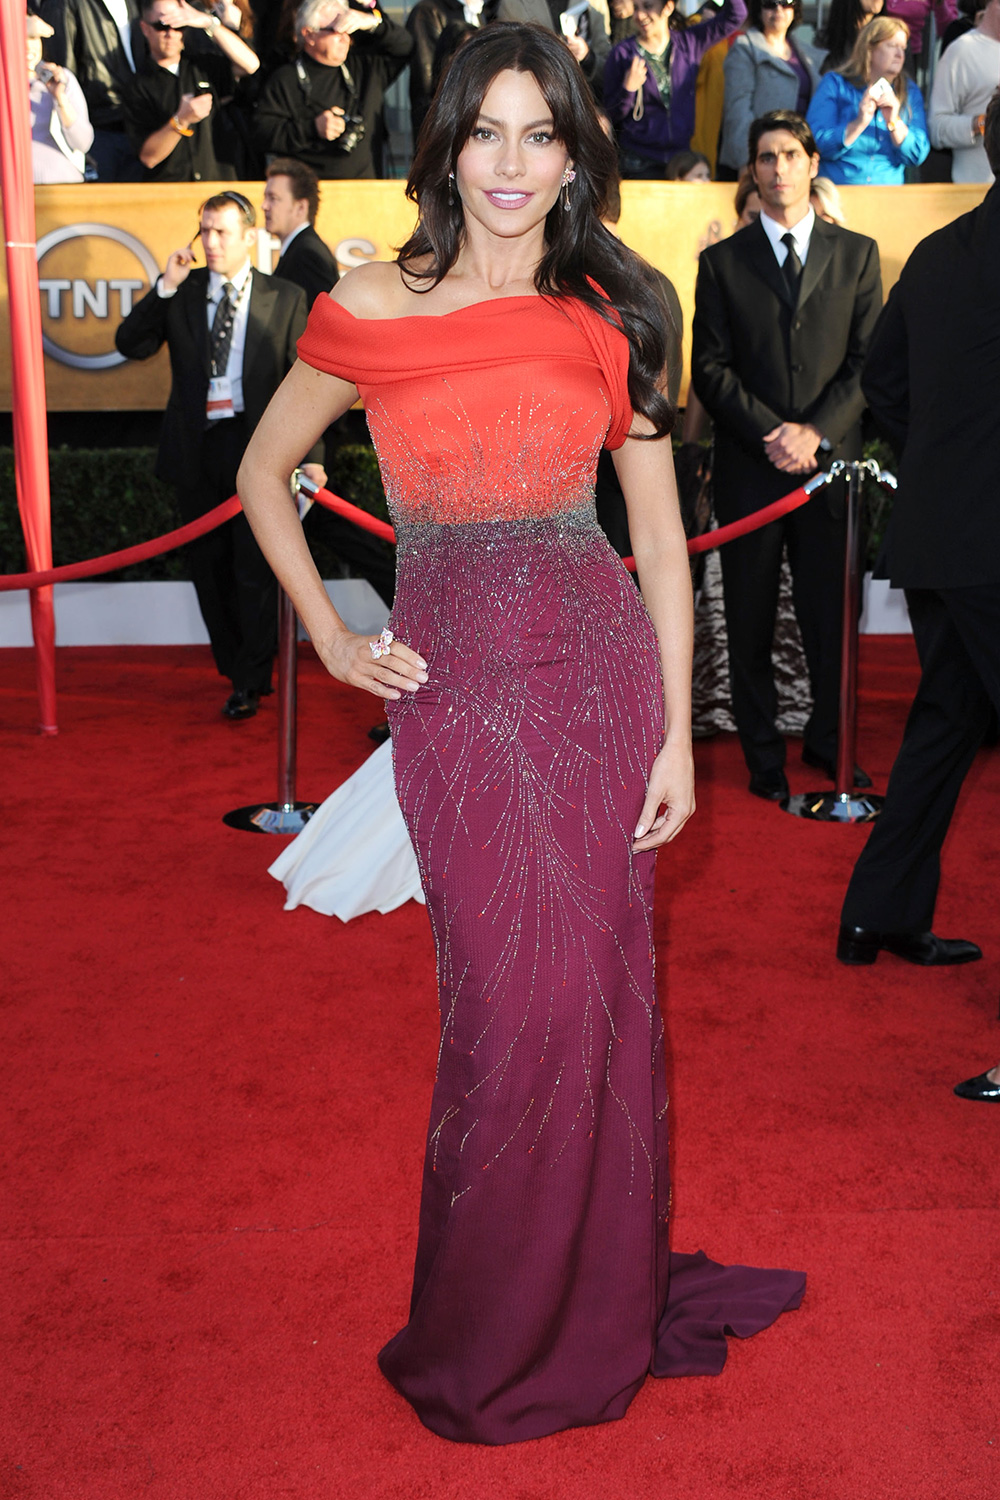 Sofía Vergara arrives at the 16th Annual Screen Actors Guild Awards held at the Shrine Auditorium on January 23, 2010 in Los Angeles, California